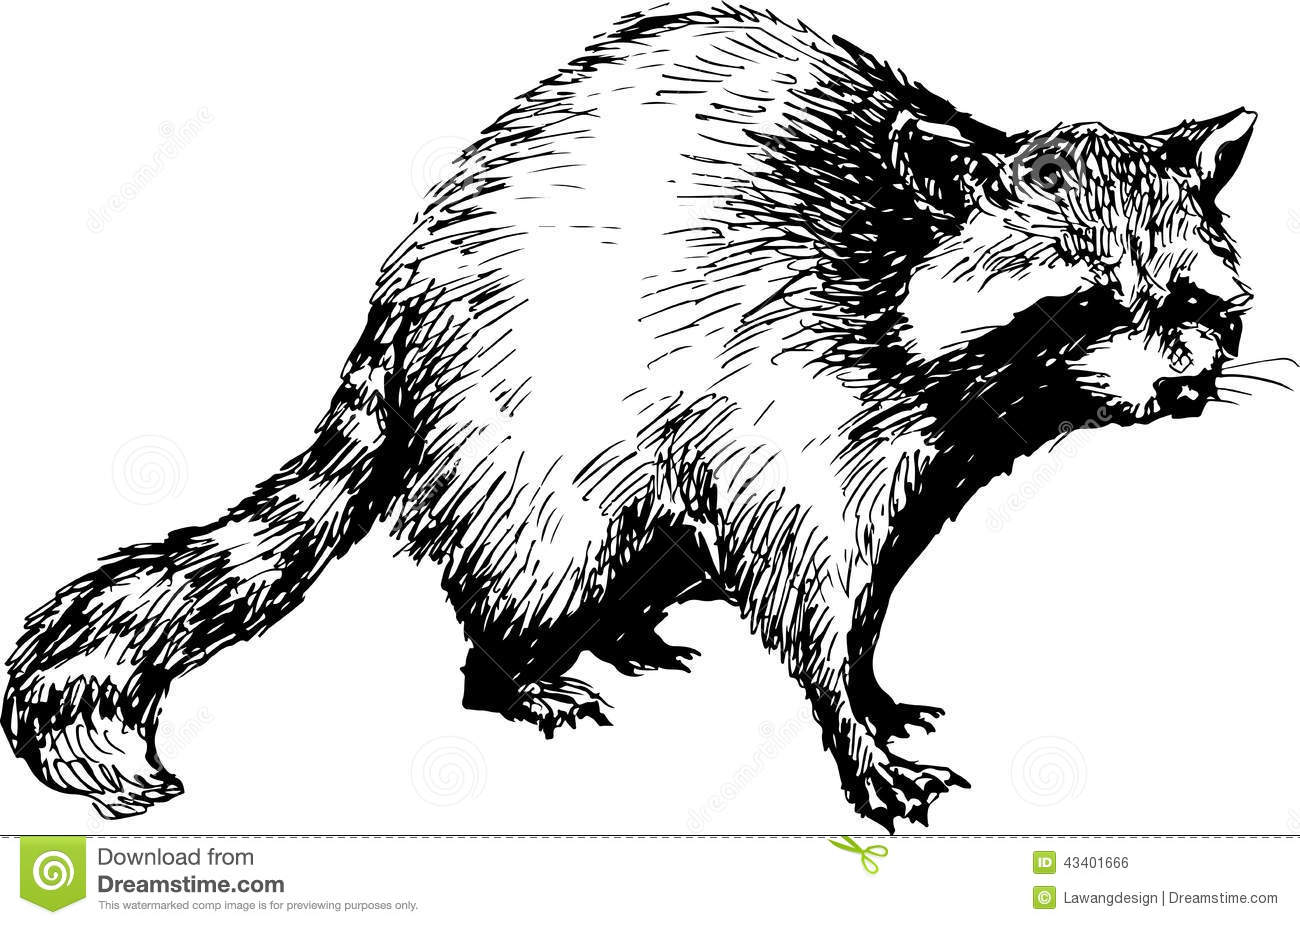 Nl1112 3 additionally Clipart 306 together with Stock Illustration Hand Drawn Raccoon Illustration Image43401666 together with File Crystal 3  PSF additionally Ligue. on 1112